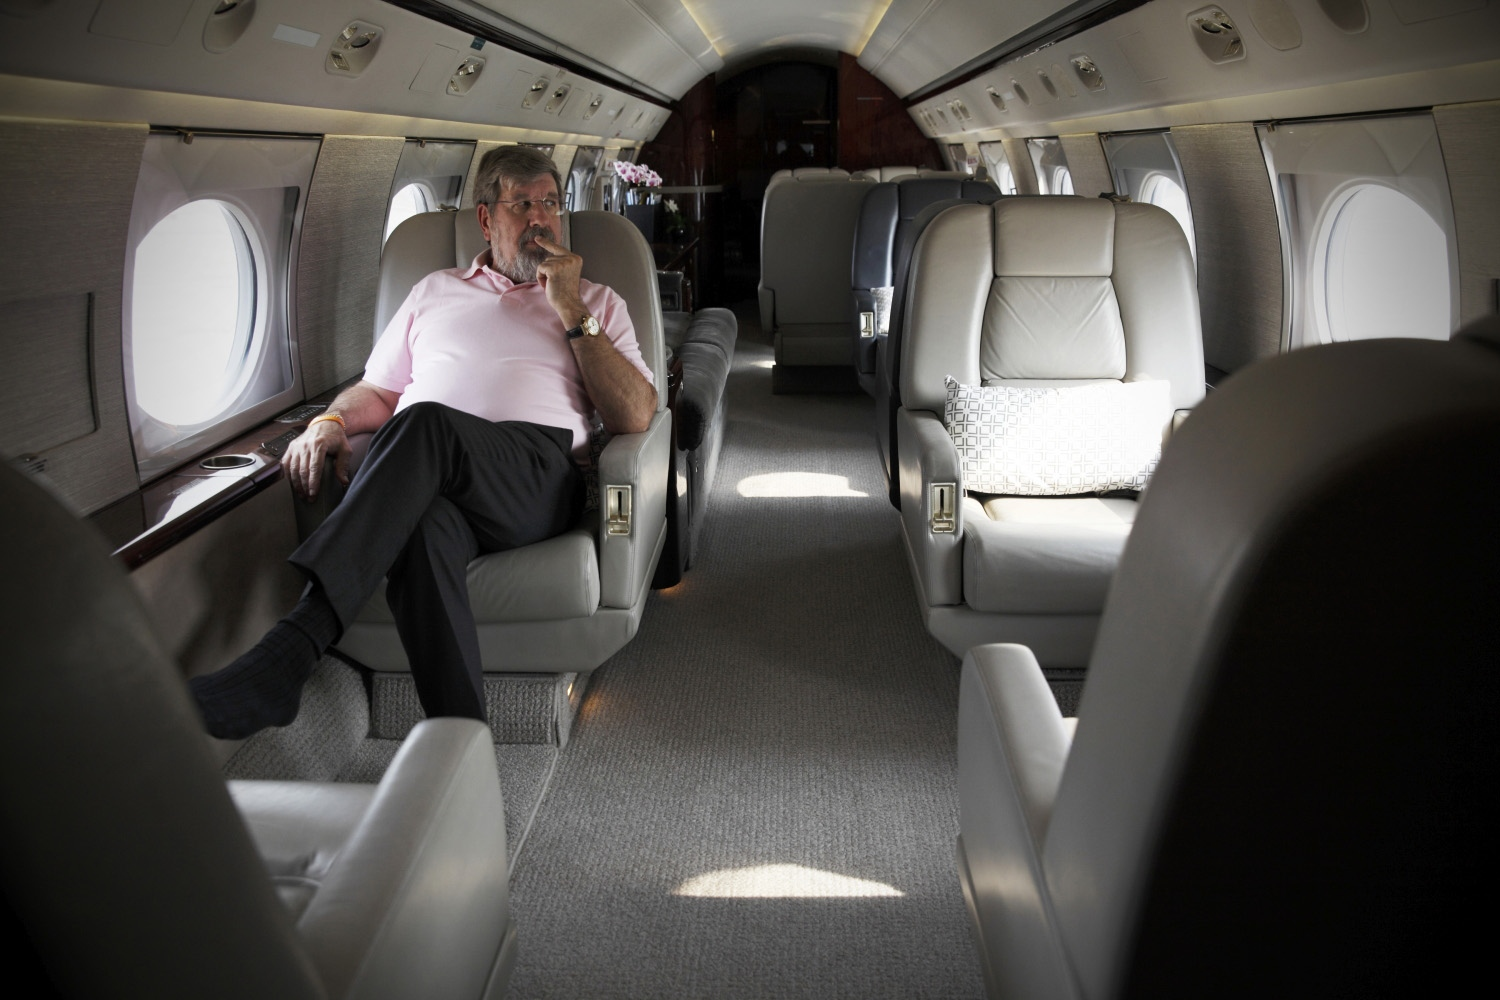 American businessmanBill Heinecke on one of his private jets at Don Mueng airport.  Bangkok, Thailand